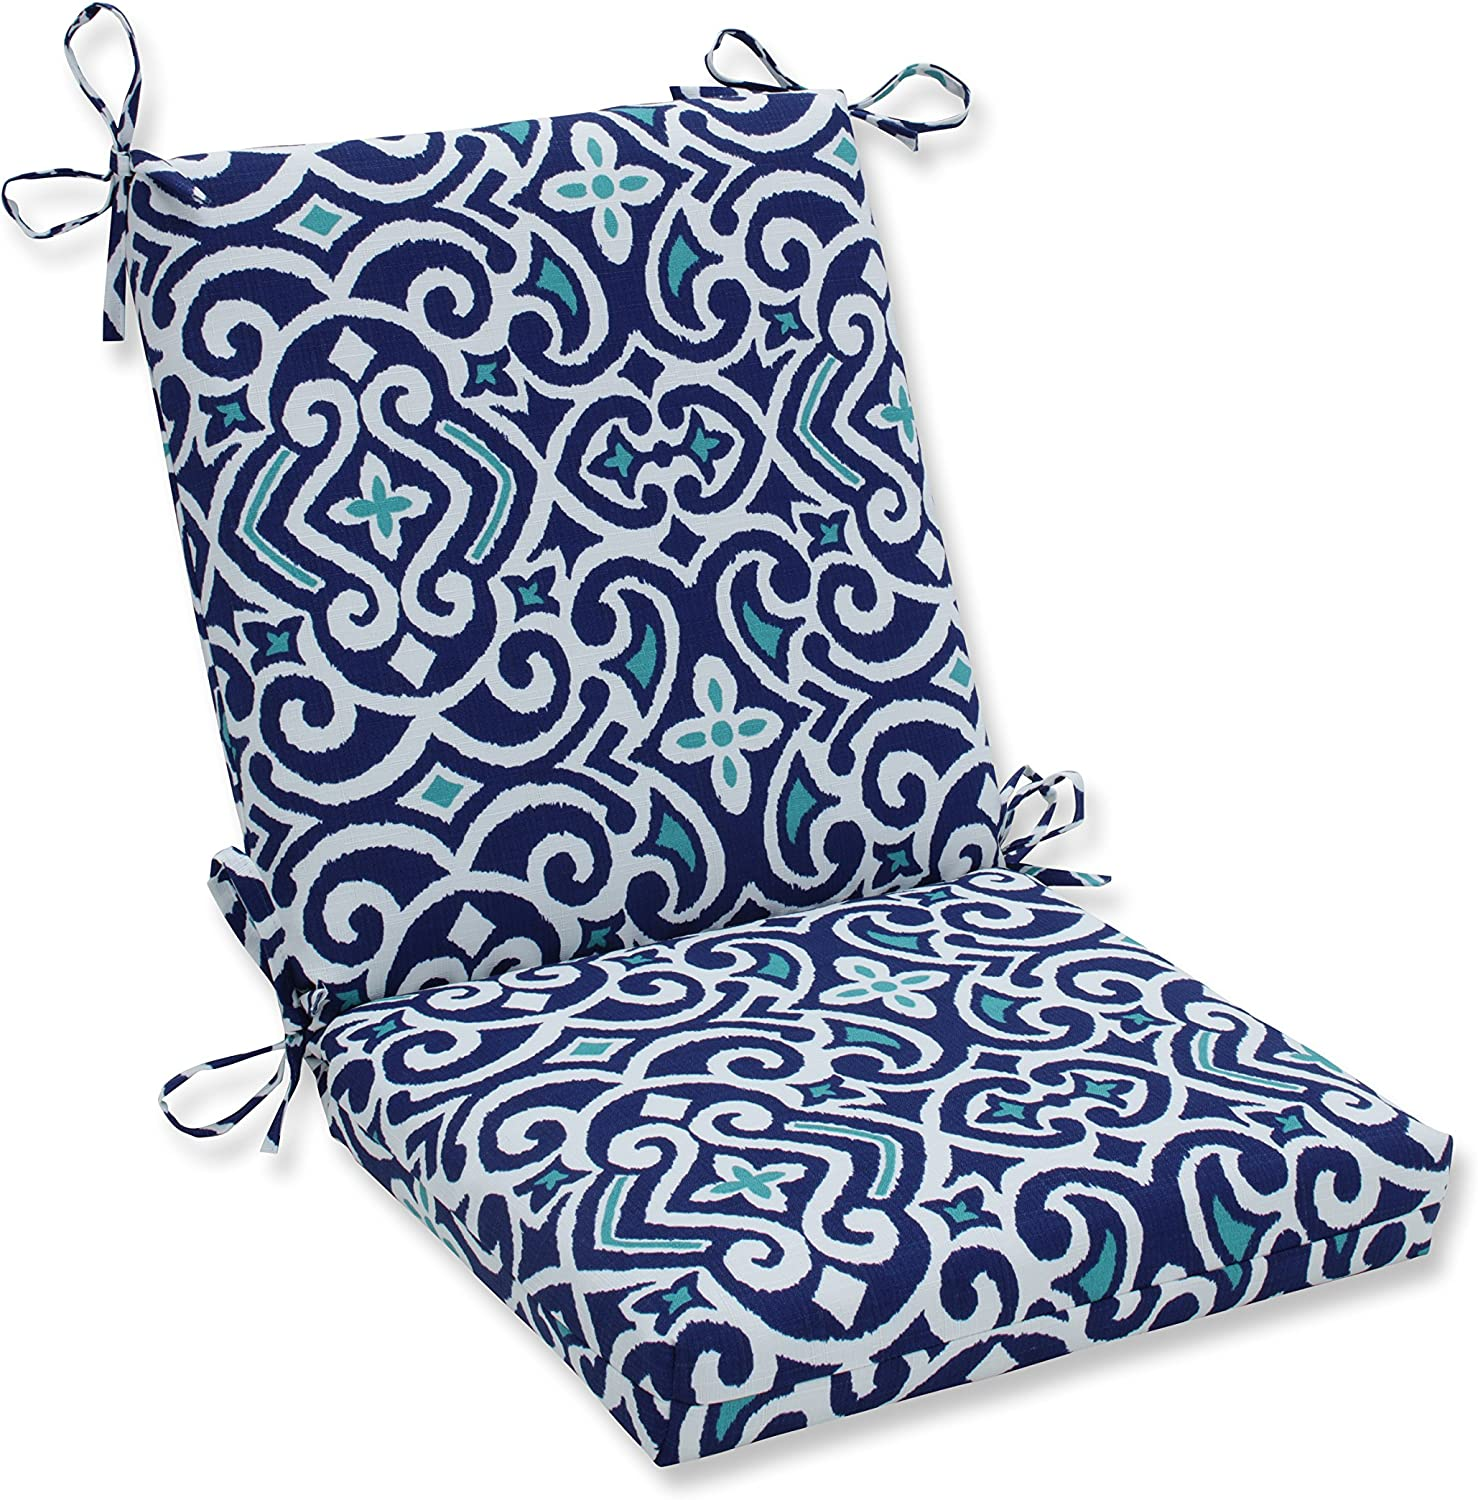 Pillow Perfect Outdoor Indoor New Damask Marine Squared Corners Chair Cushion